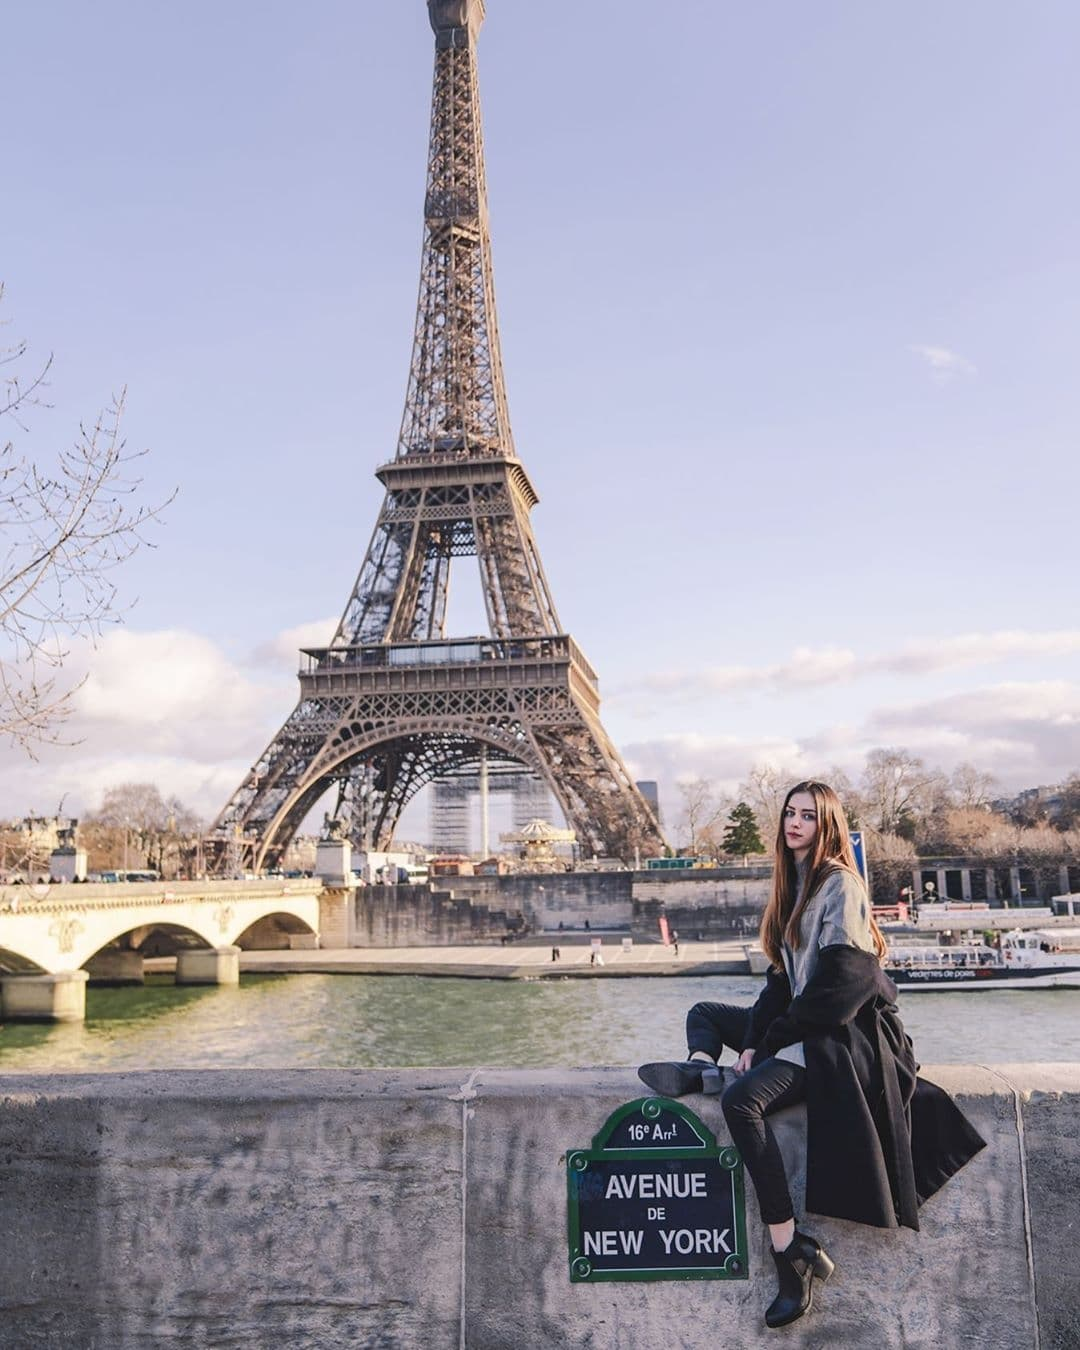 Woman sitting next to Avenue de New York sign in front of the Eiffel Tower